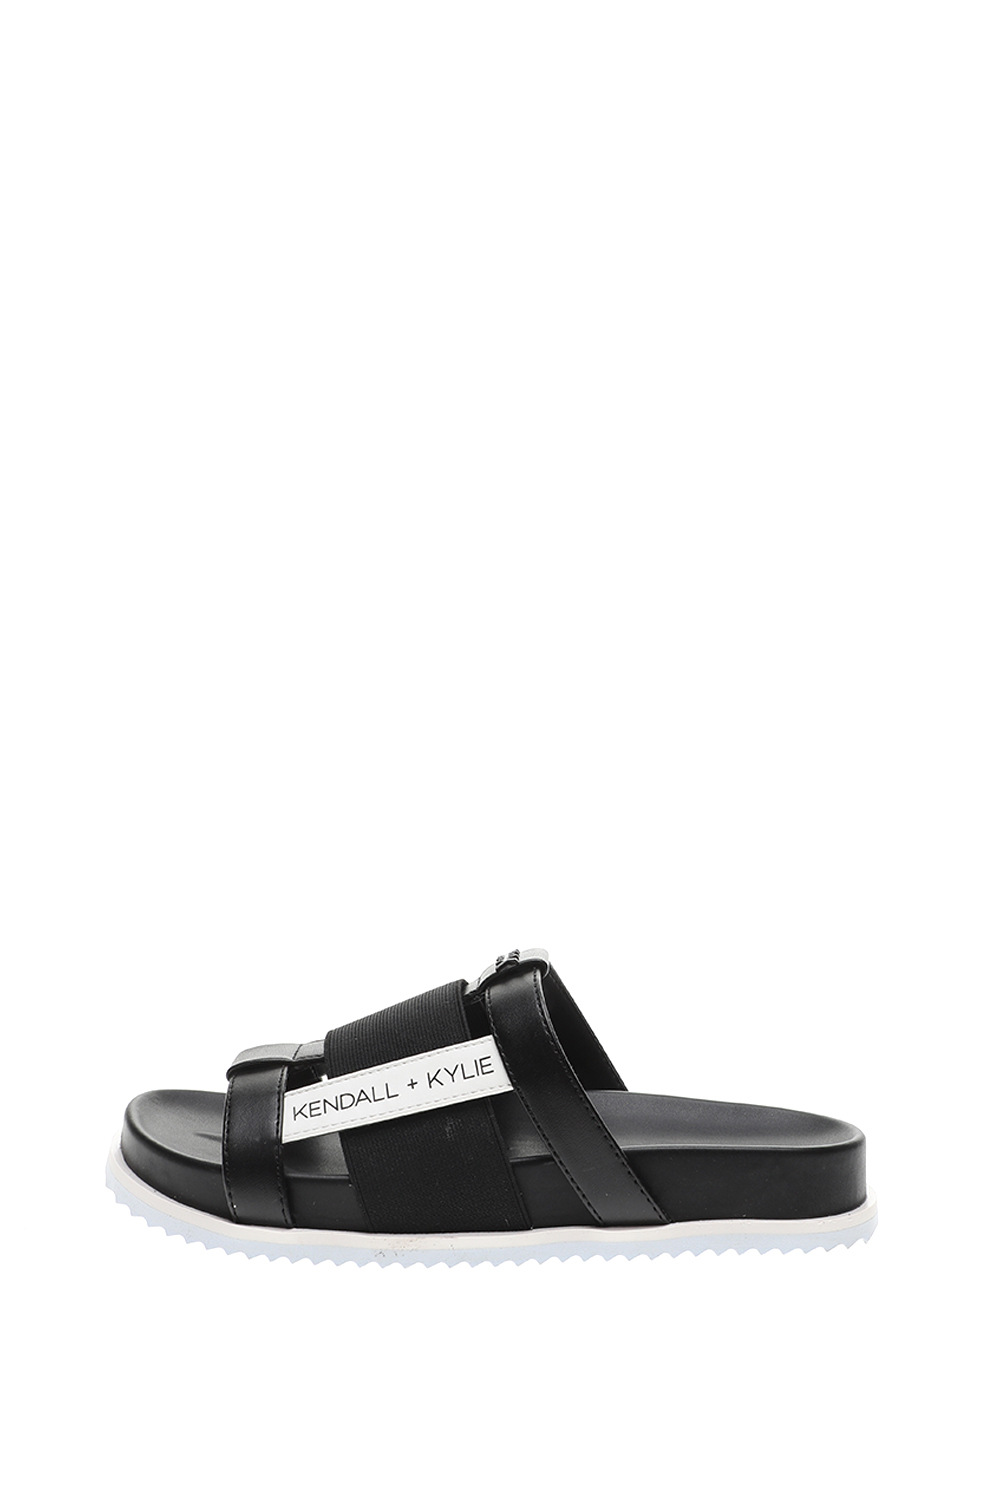 KENDALL + KYLIE – Γυναικεία slides KENDALL + KYLIE LUXIA μαύρα λευκά